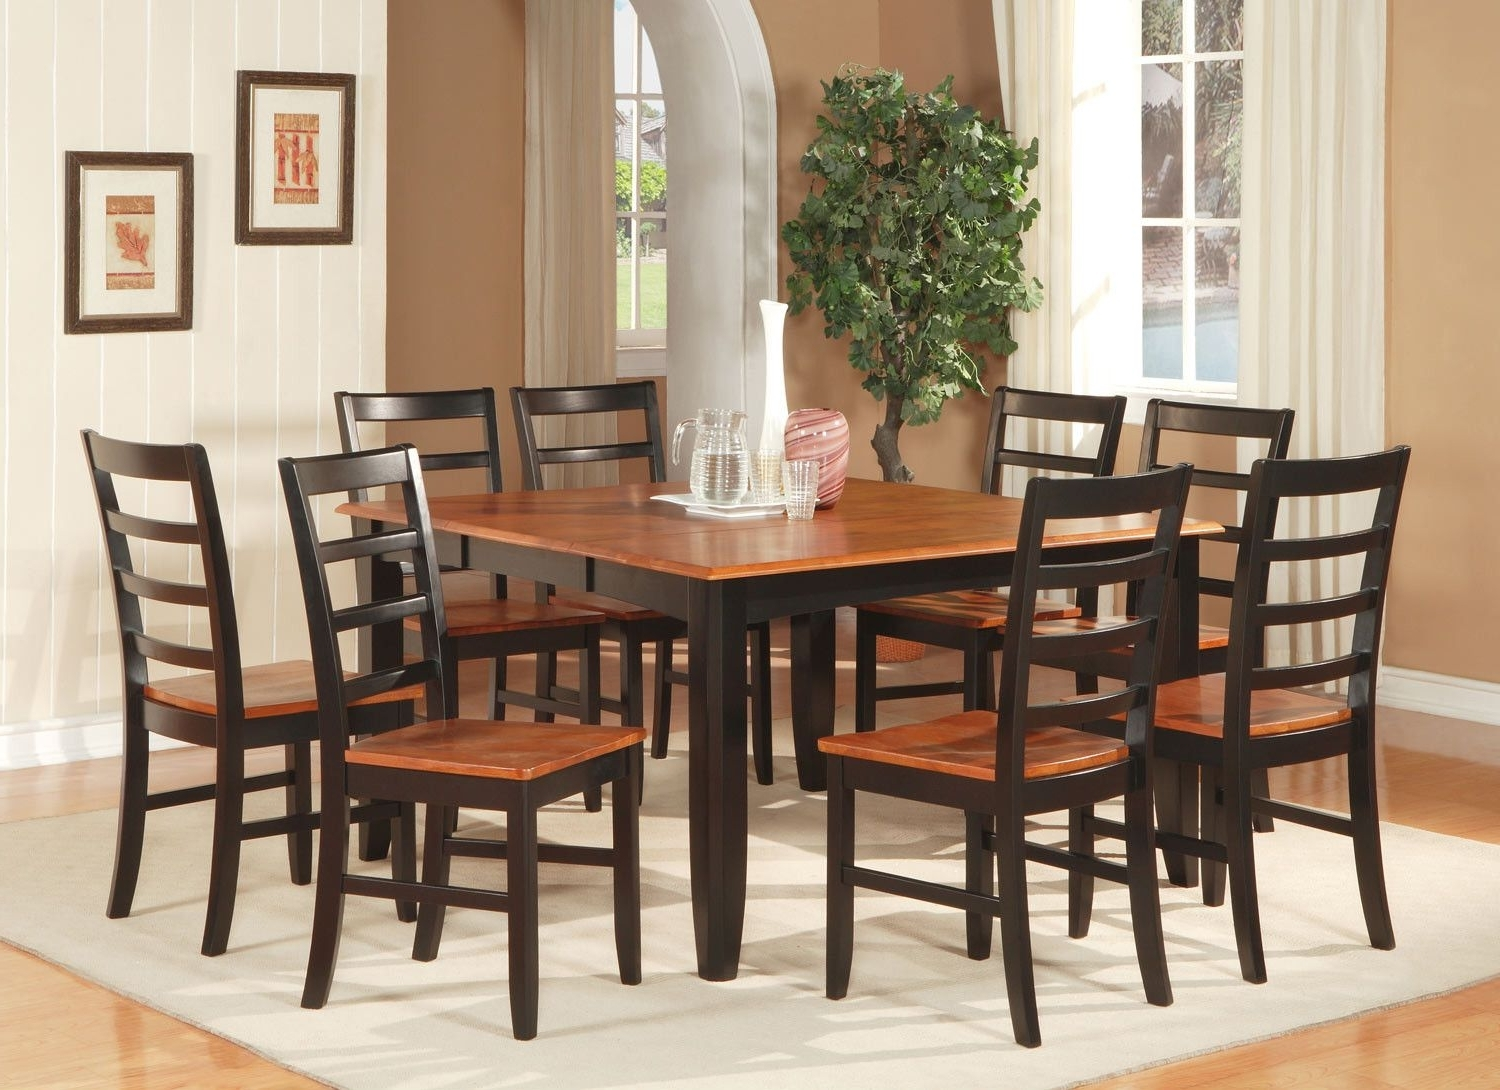 Parfait 7 Piece Dining Set In (View 7 of 25)